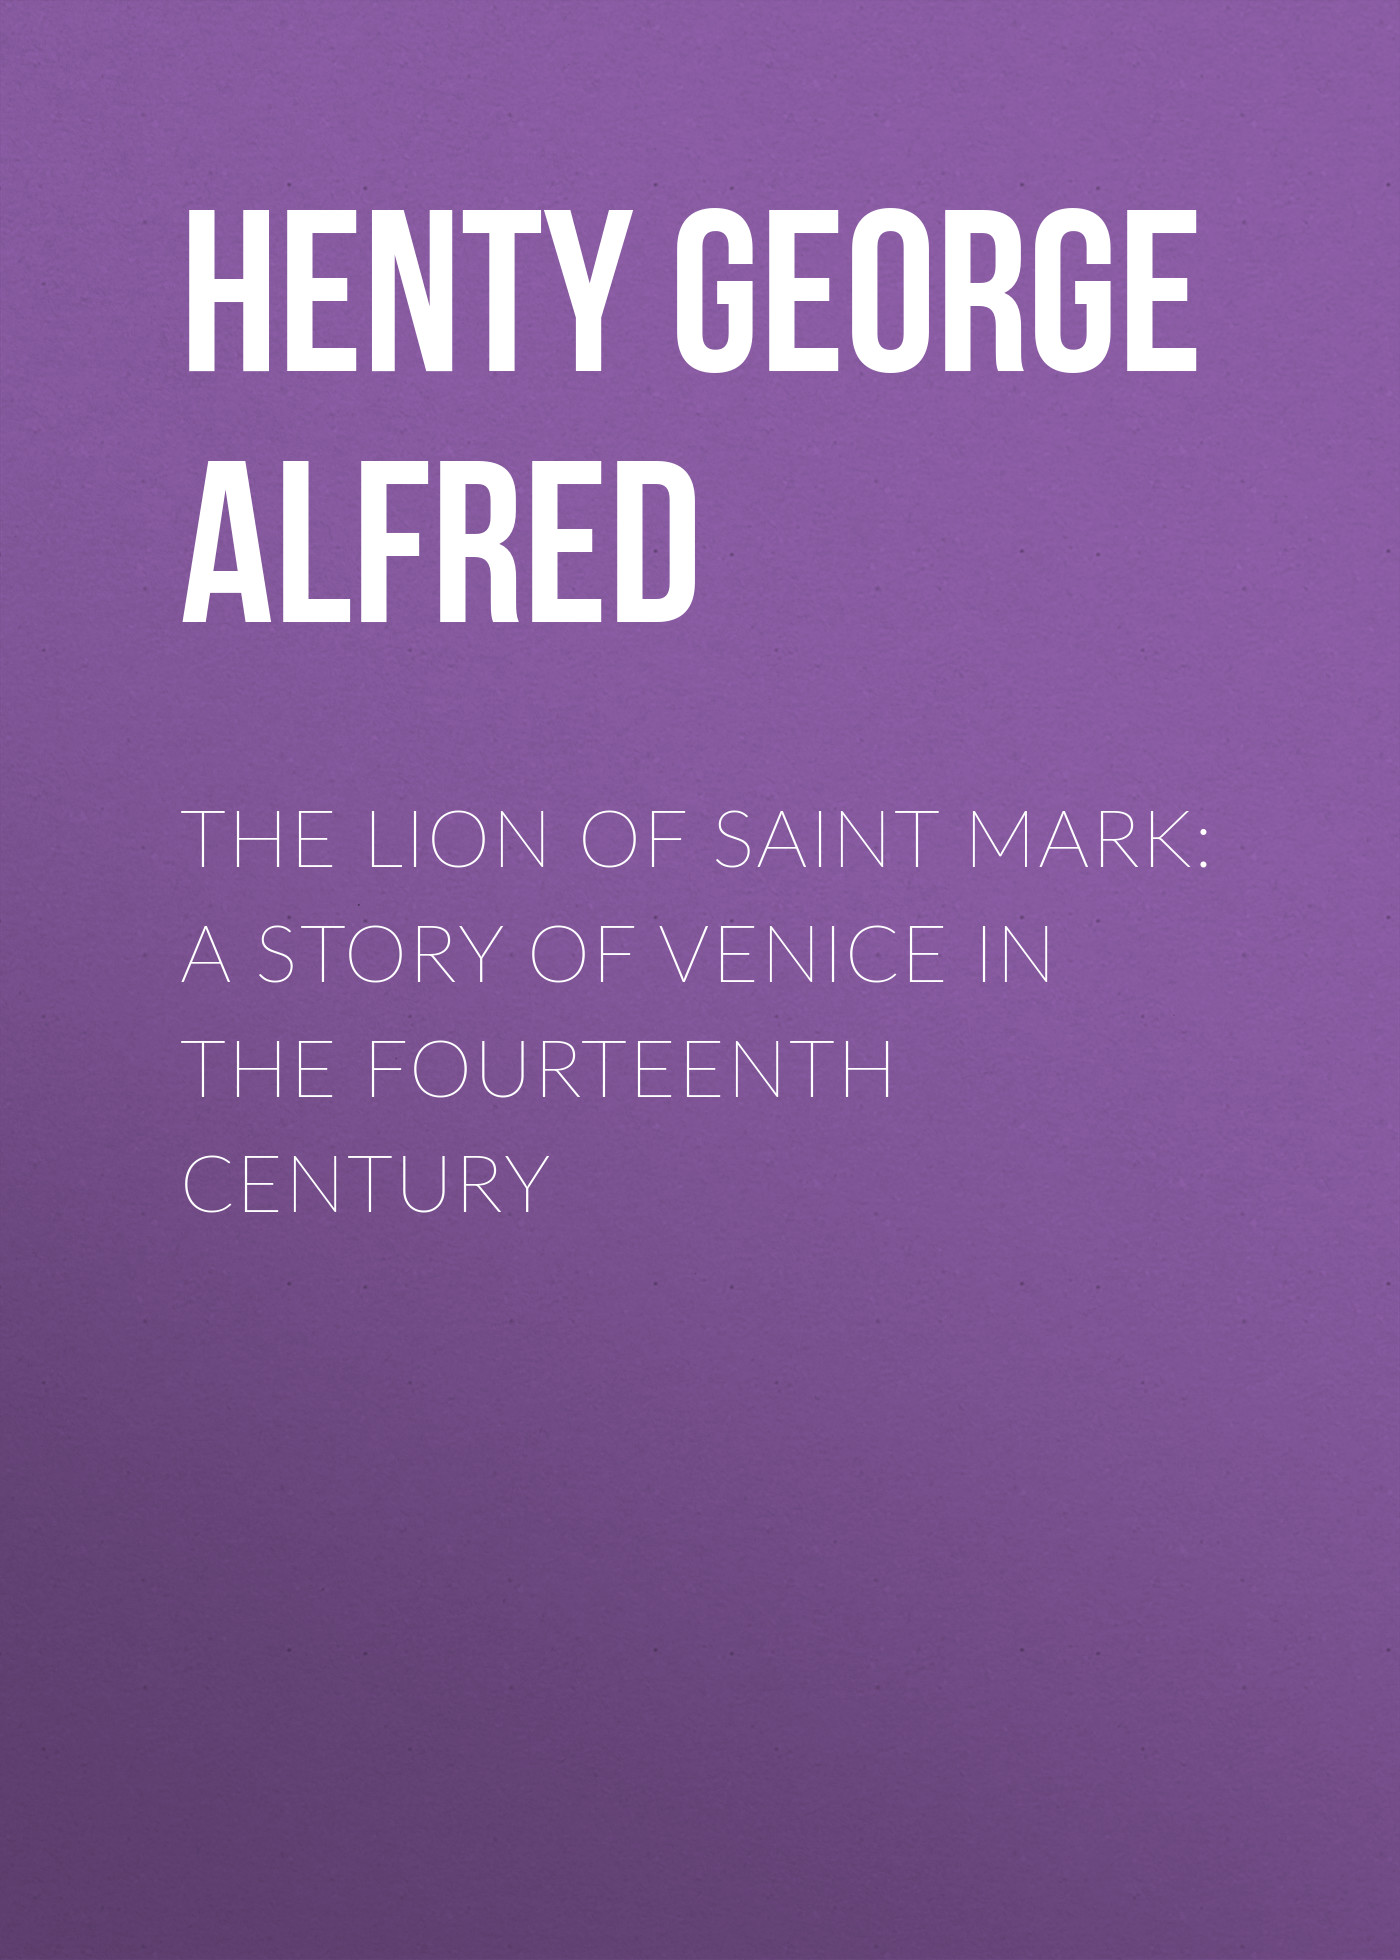 Henty George Alfred The Lion of Saint Mark: A Story of Venice in the Fourteenth Century henty george alfred the curse of carne s hold a tale of adventure